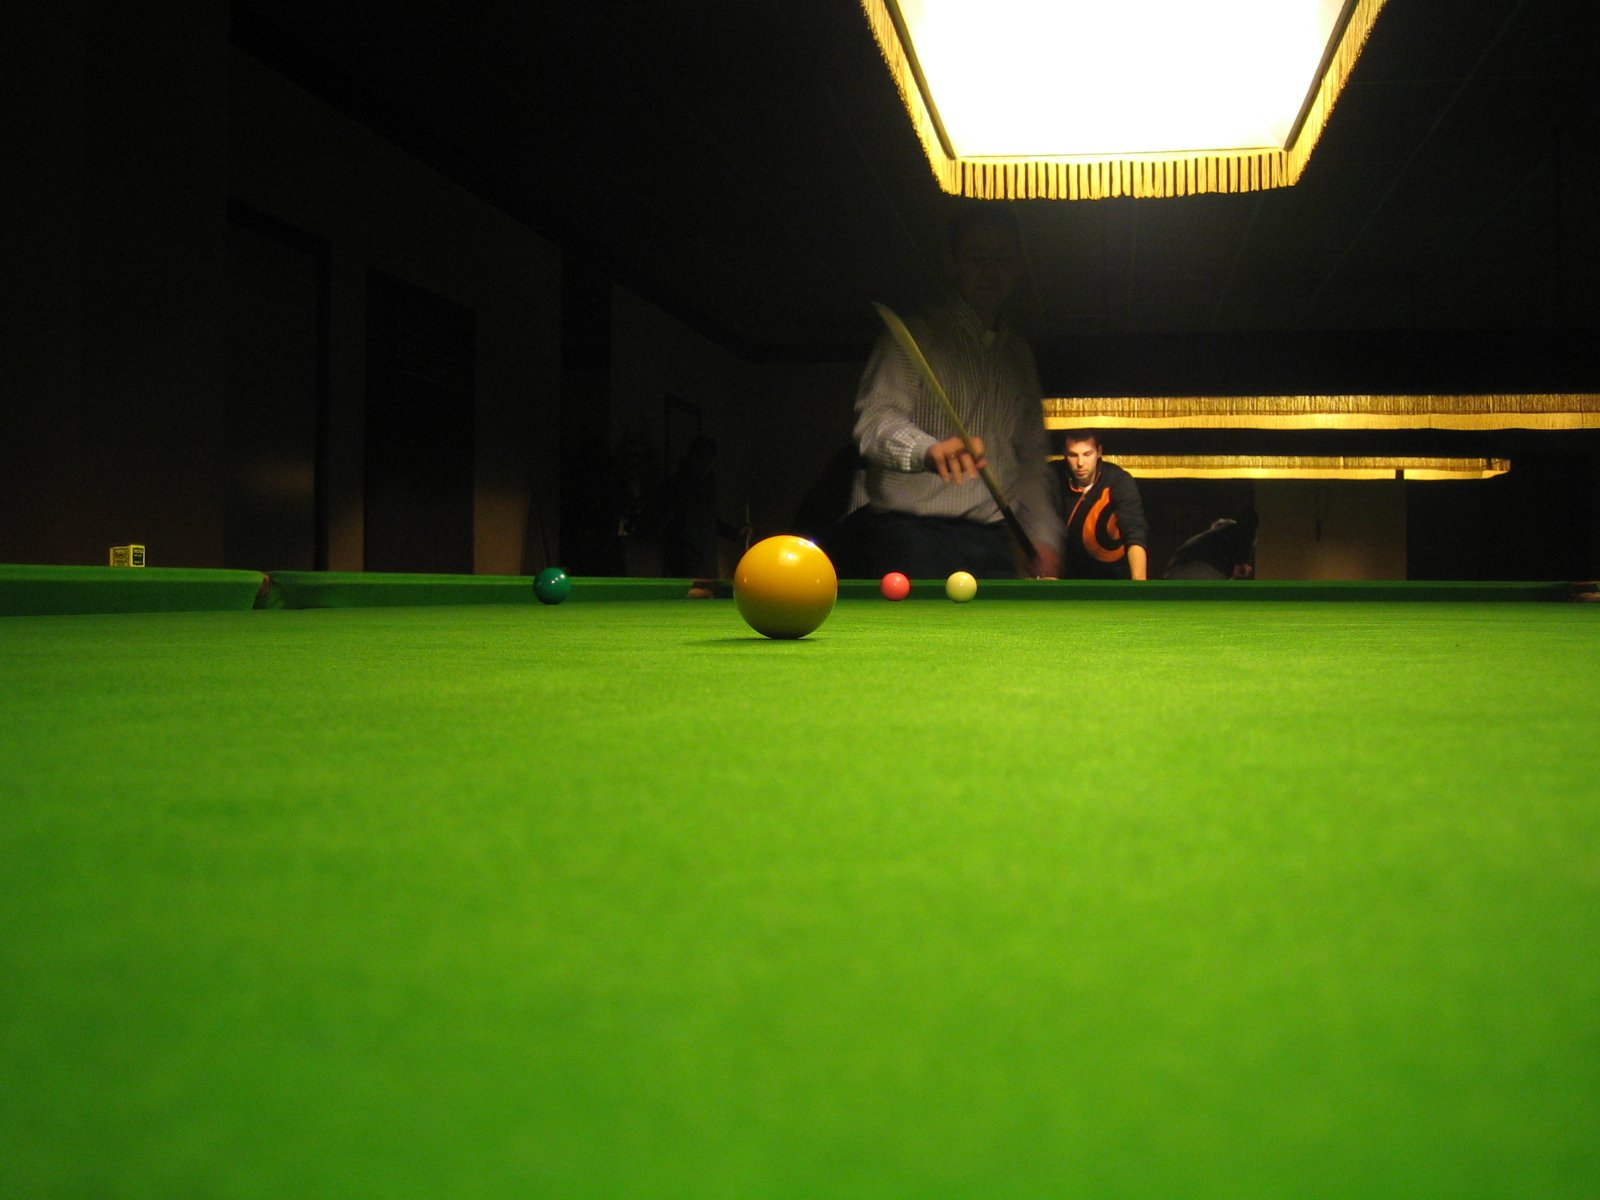 Free Snooker Stock Photo Freeimages Com